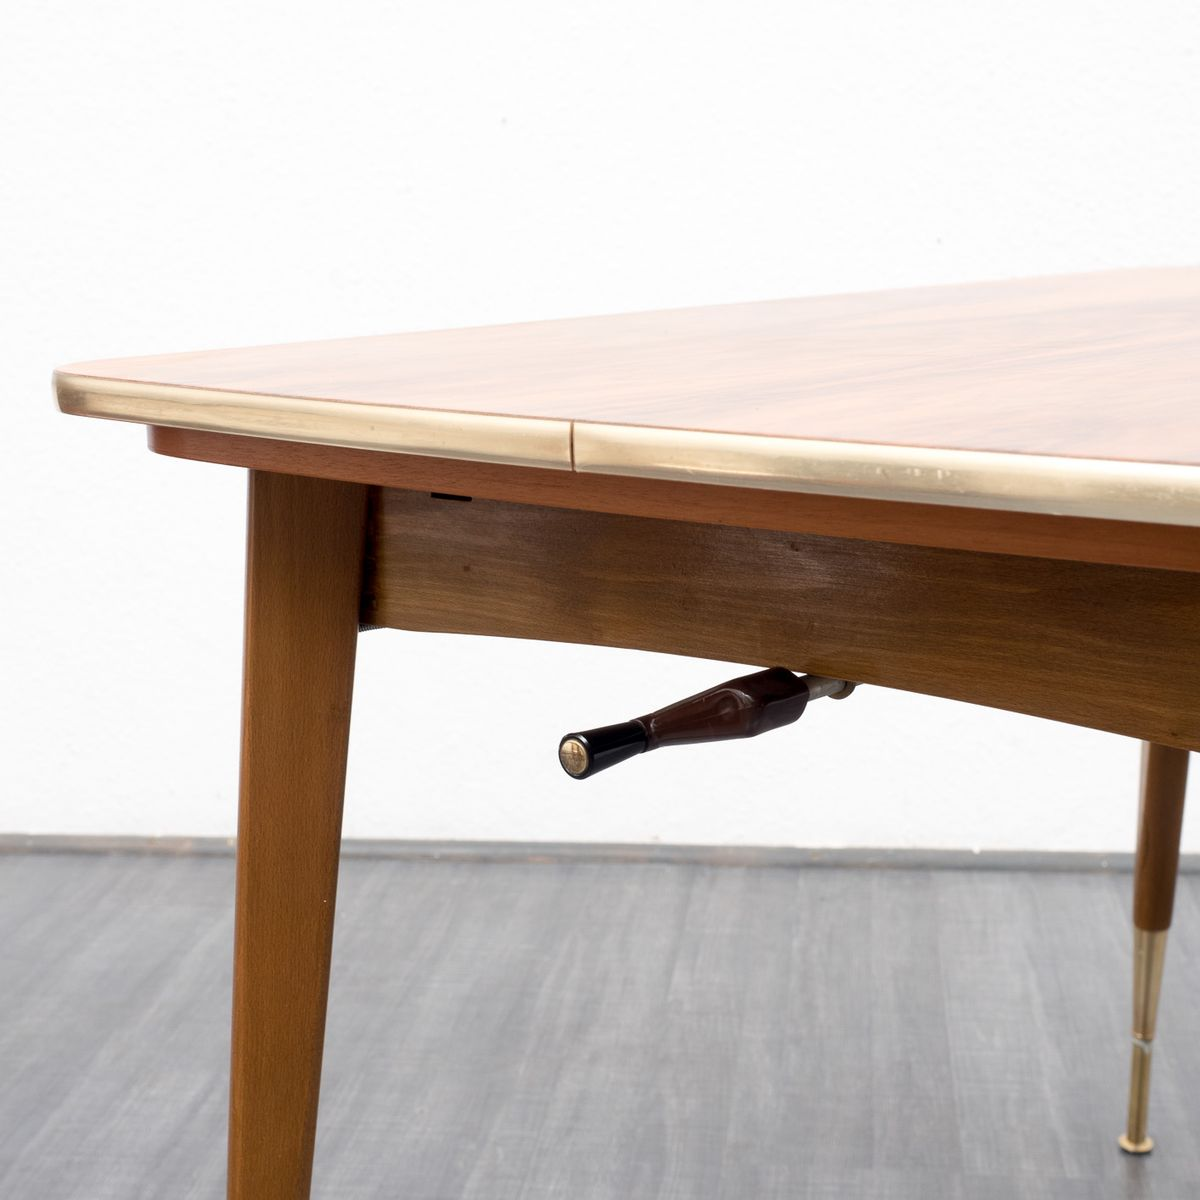 Height Adjustable amp Extendable Walnut Dining Table 1950s